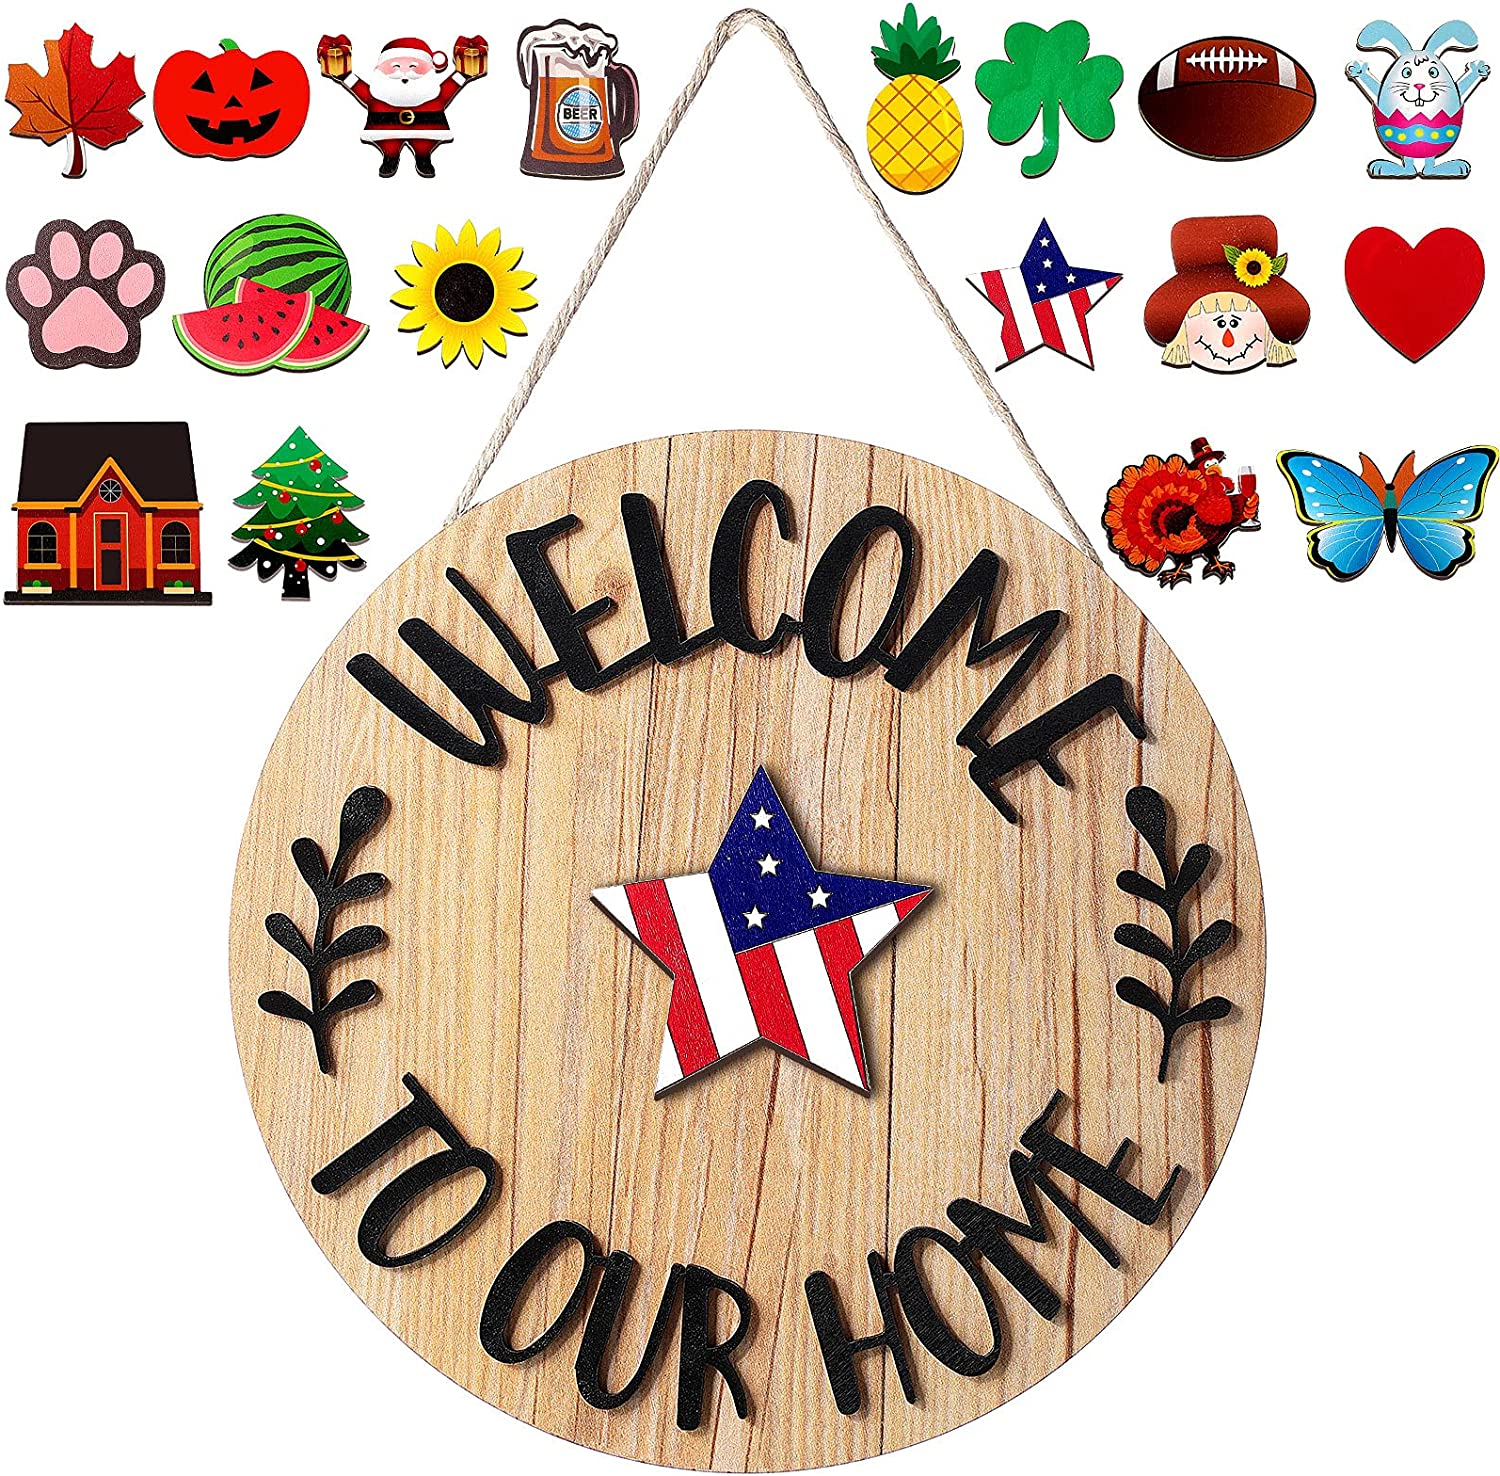 Jetec Interchangeable Seasonal Welcome Door Sign Rustic Welcome to Our Home Hanging Sign Round Wood Front Door Sign with 18 Seasonal Ornament for Easter Halloween Christmas Holiday Porch Decor